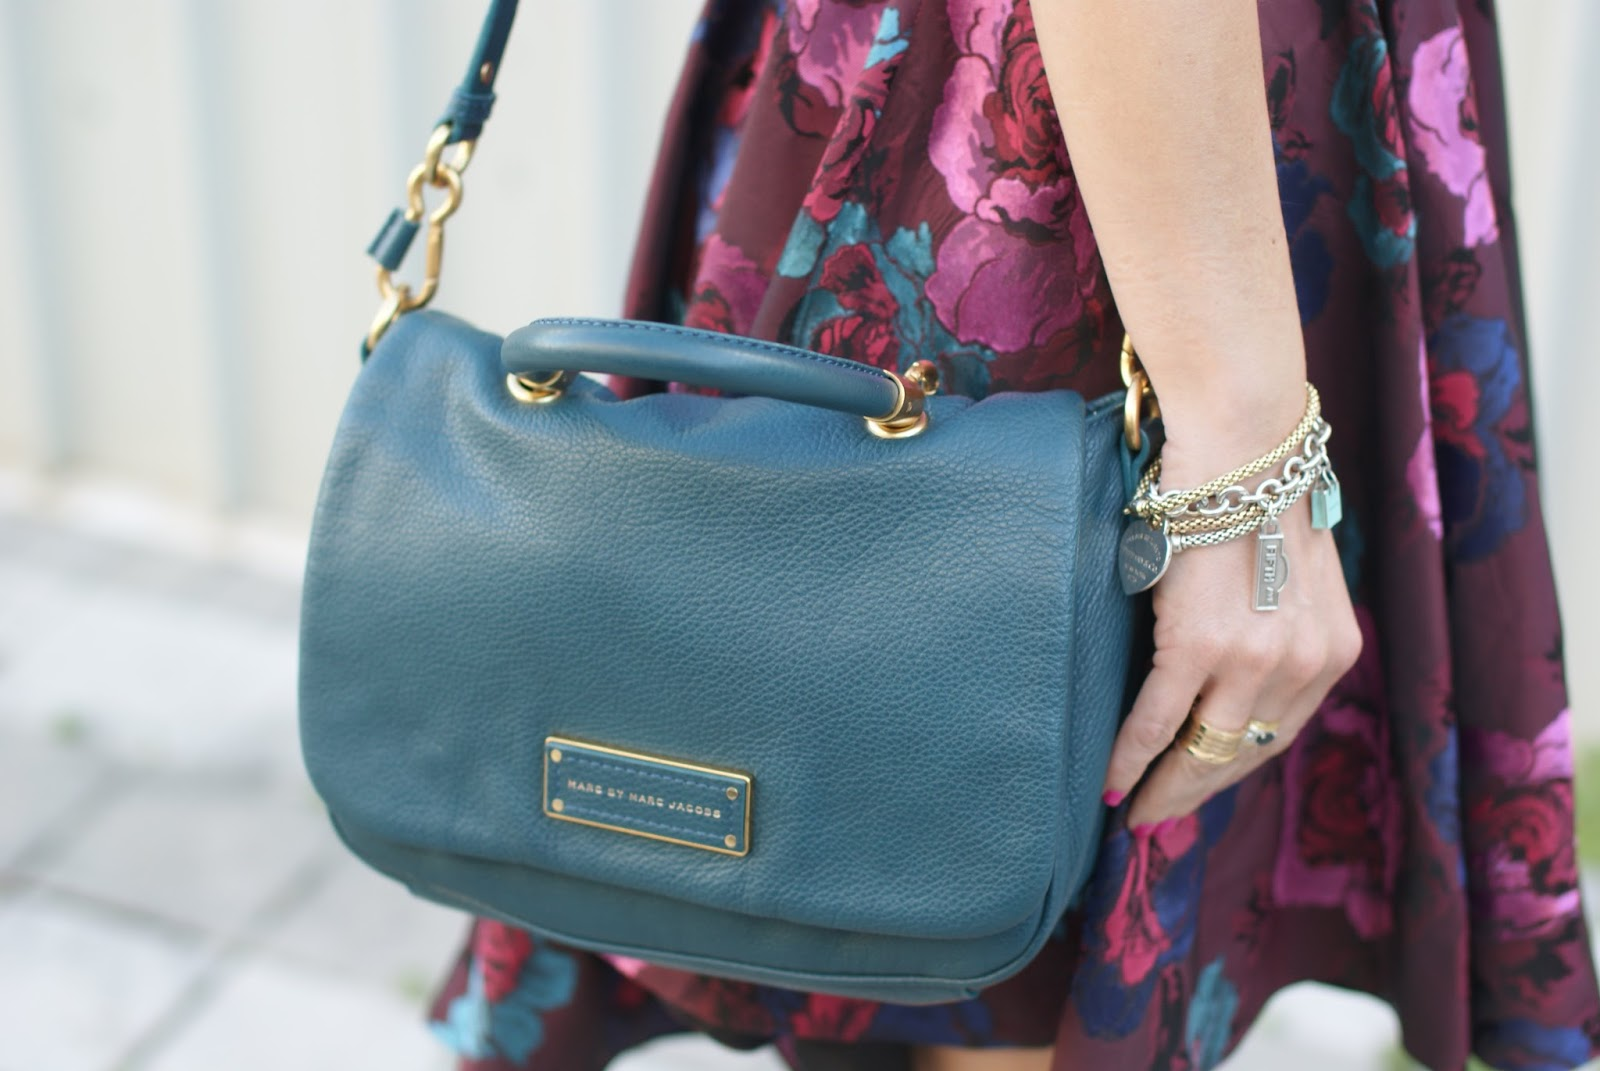 Marc by Marc Jacobs too hot to handle crossbody bag, Fashion and Cookies fashion blog